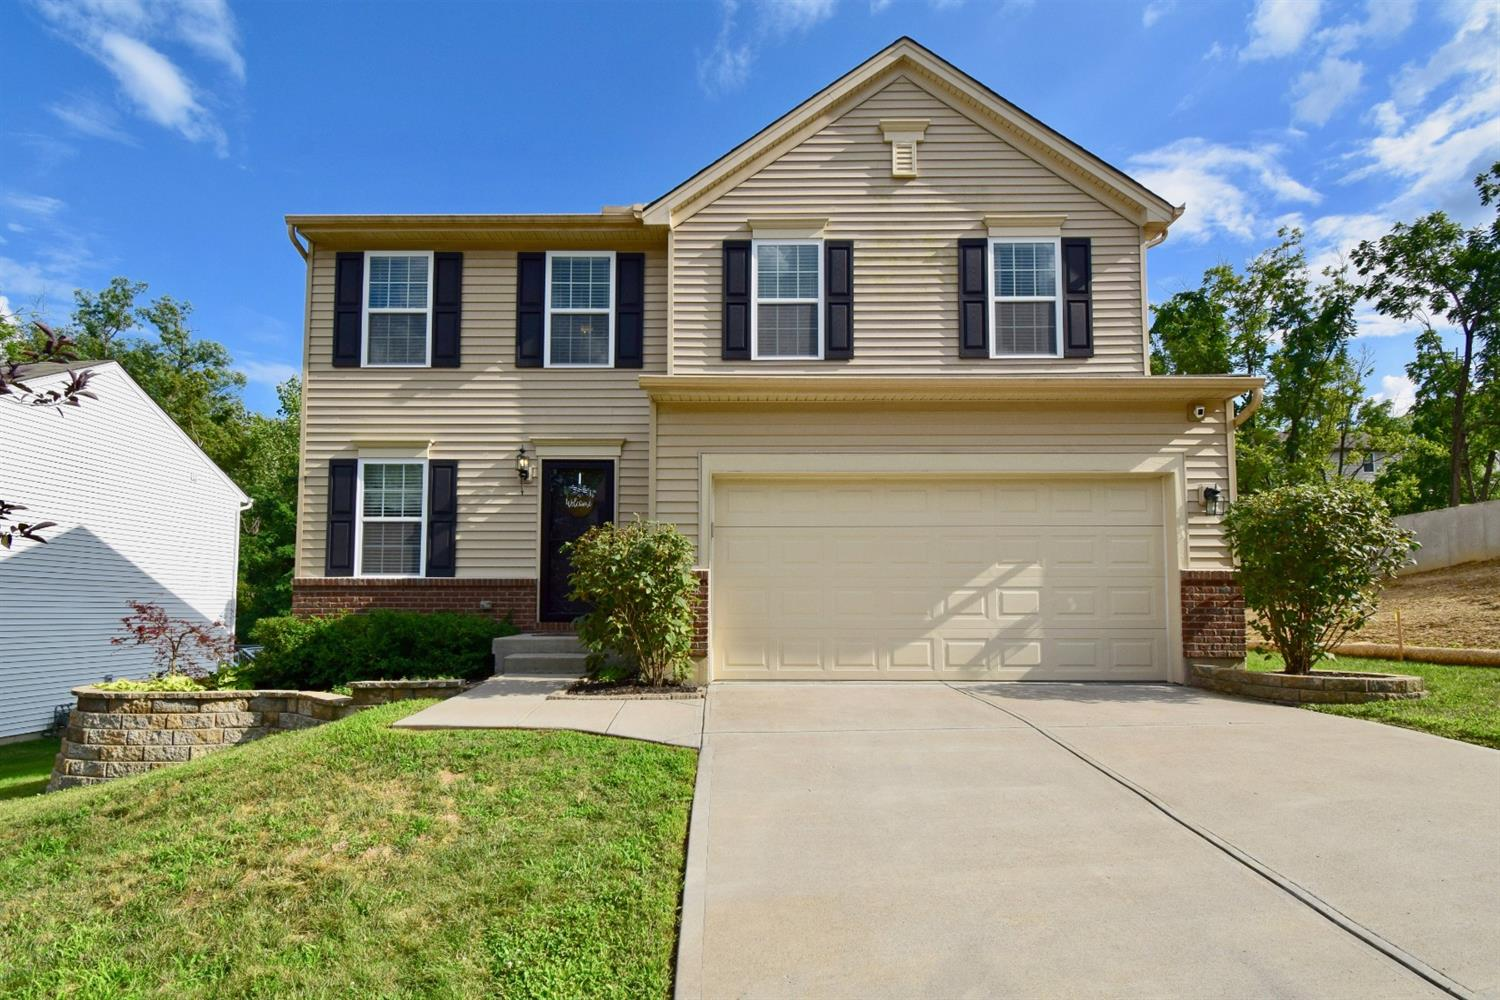 5318 Leslies Woods Ct Green Twp. - Hamilton Co., OH